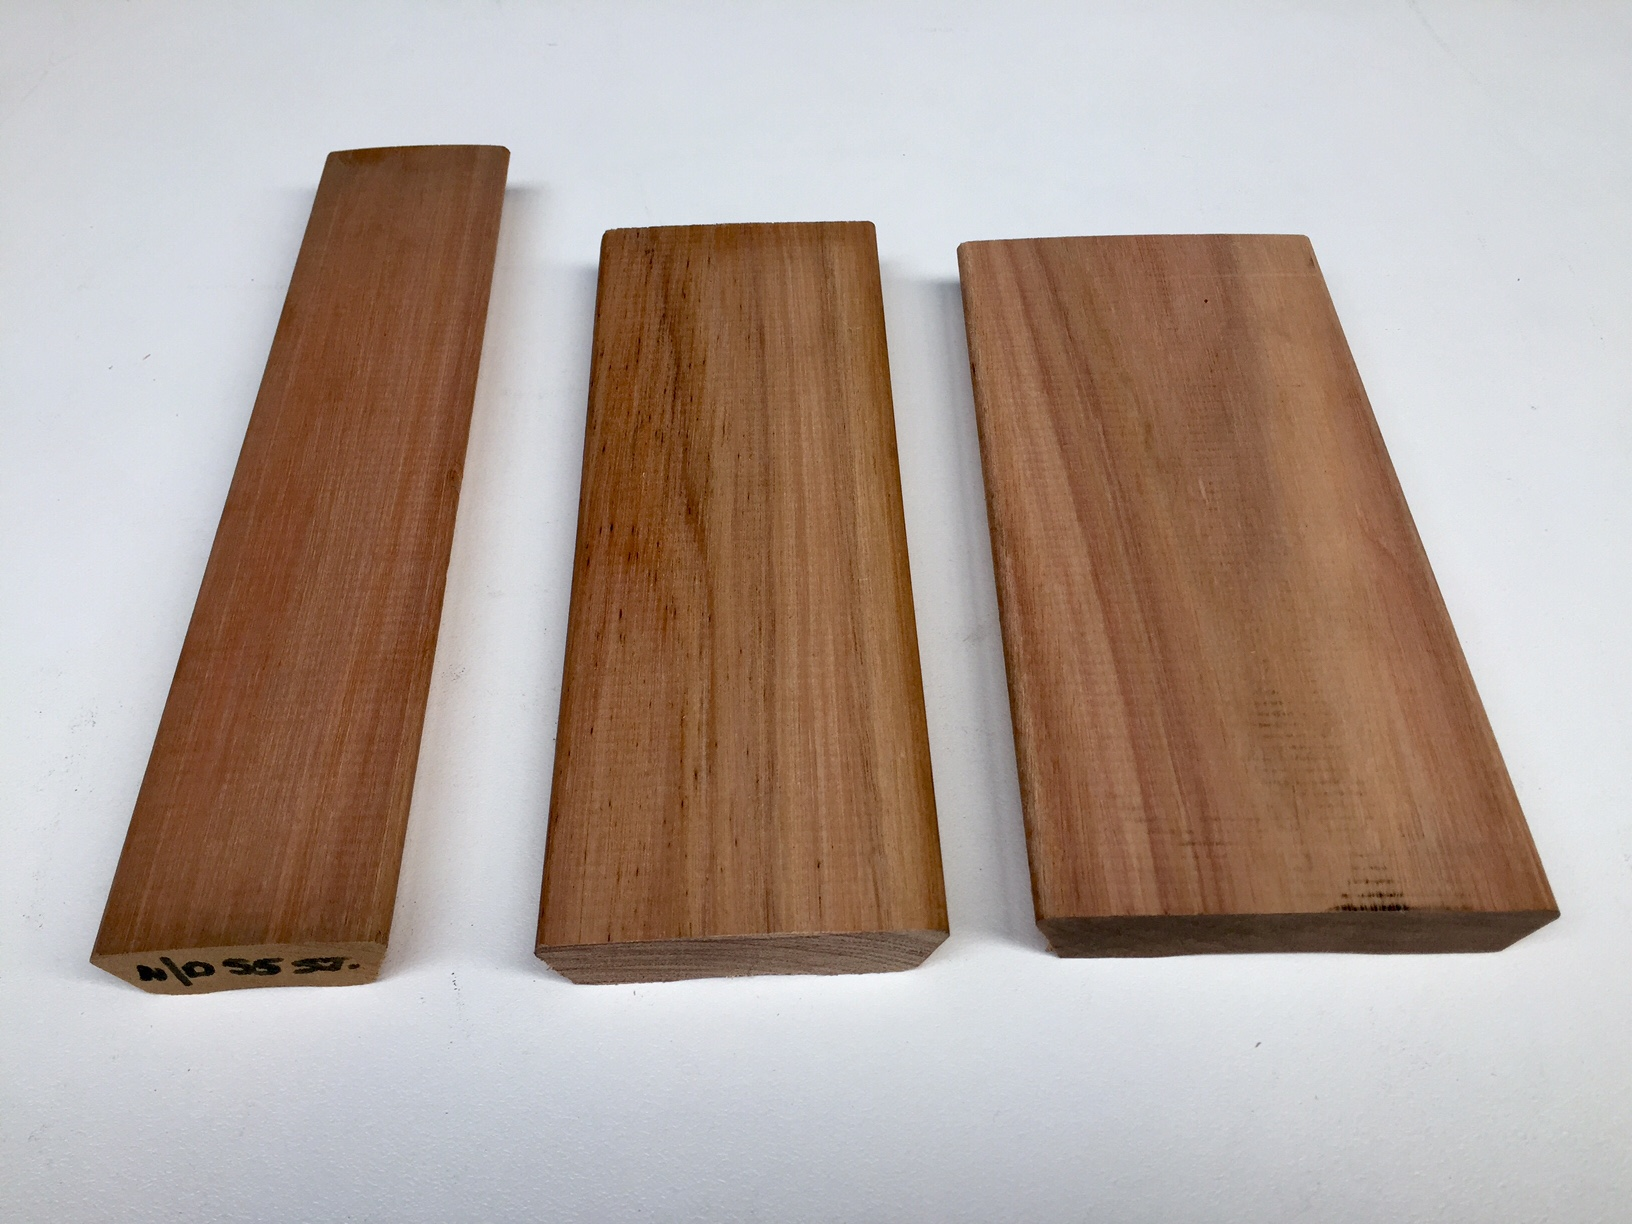 Stringybark Newdeck Samples